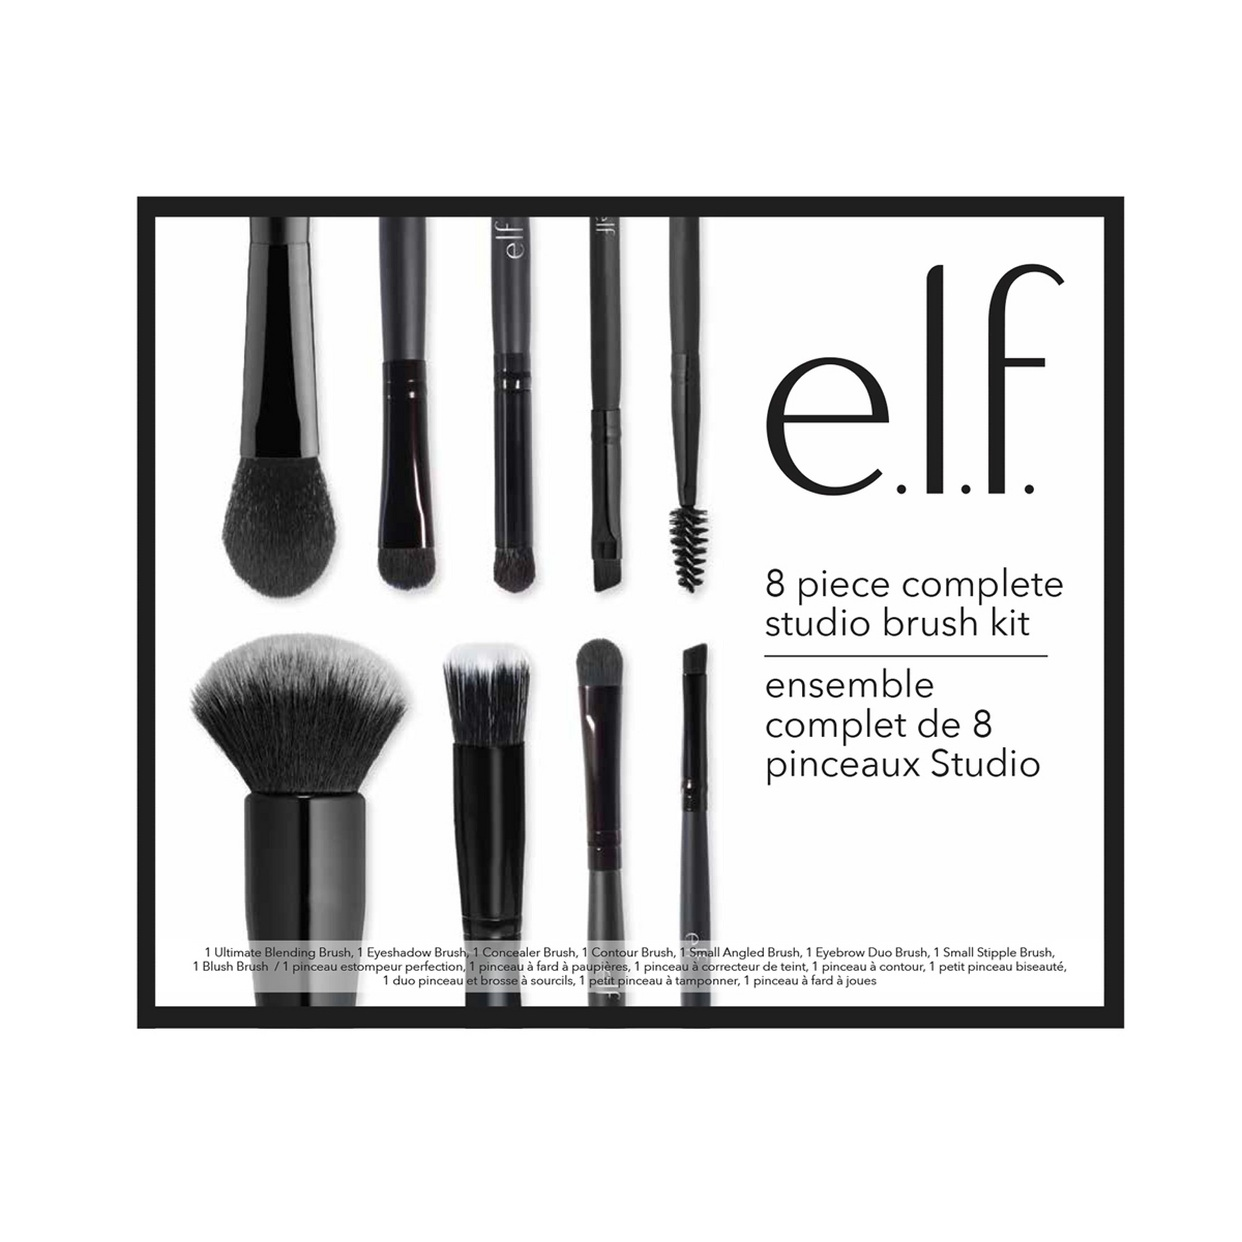 - Bloggers and influencers talk about these brushes all the time and they are right! They are great! Plus 8 brushes for $20!Find it here.